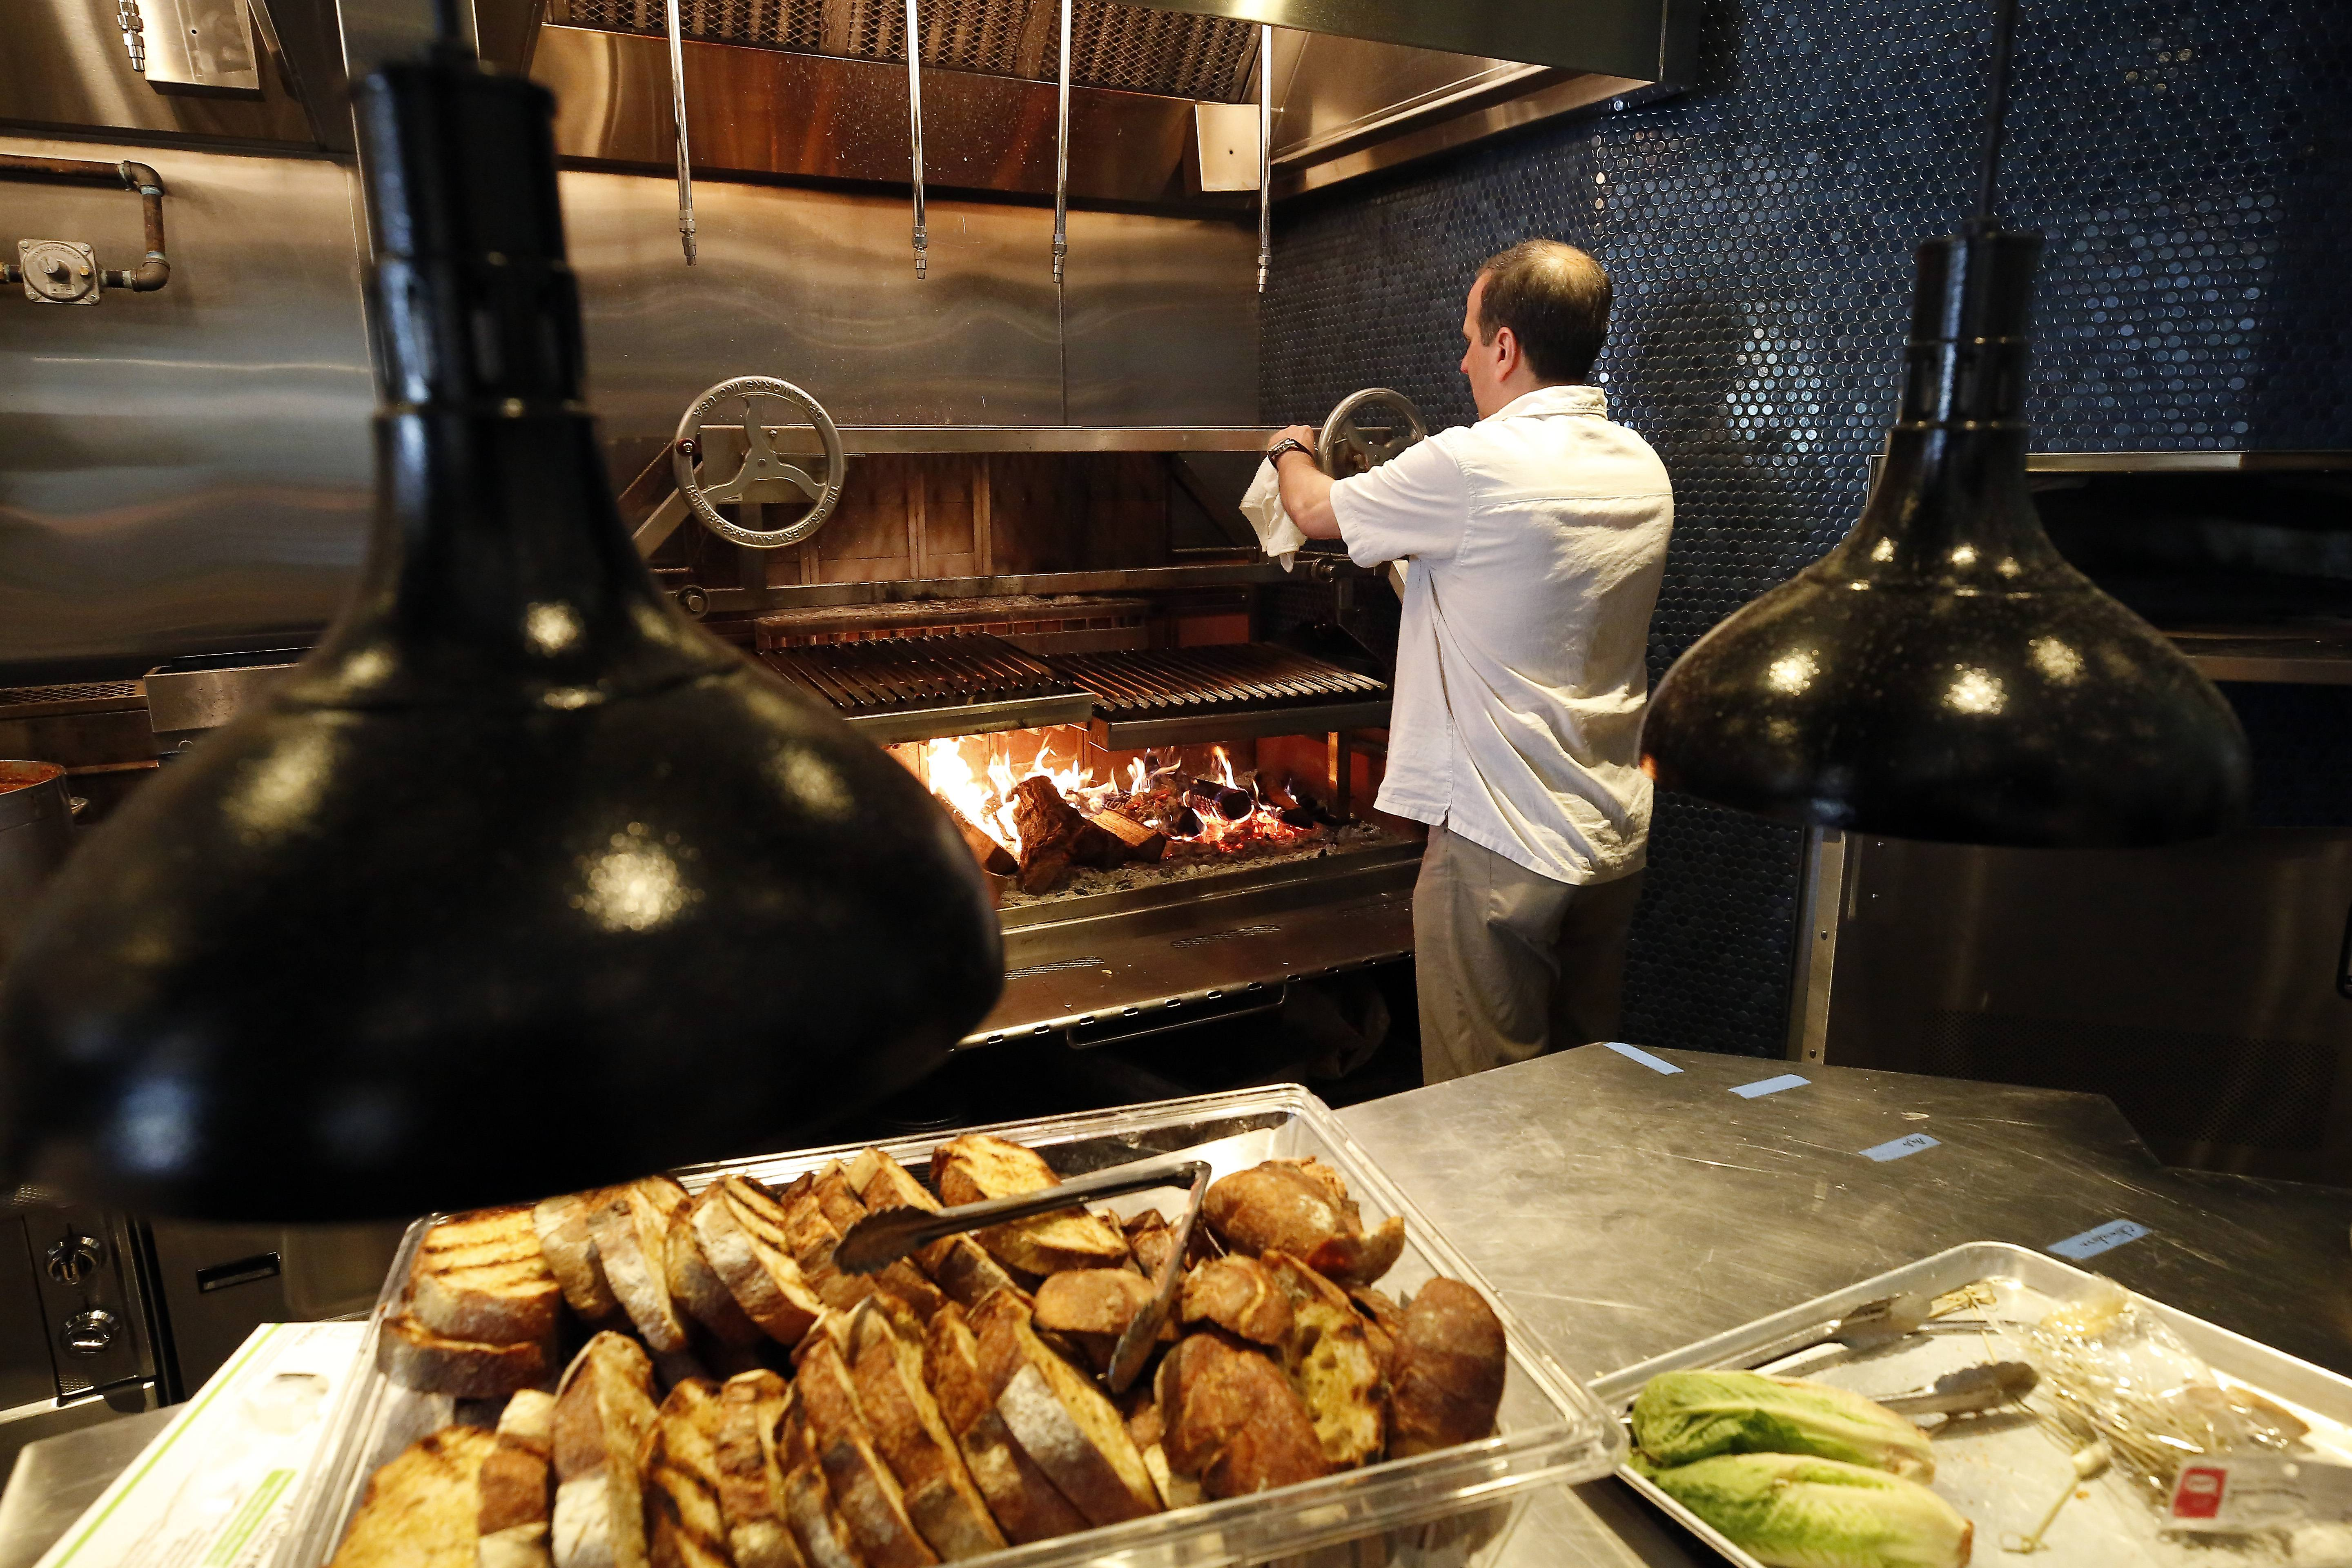 Executive chef and founder Mark Grimes works a special wood-burning grill at Che Figata, which recently opened in Naperville.